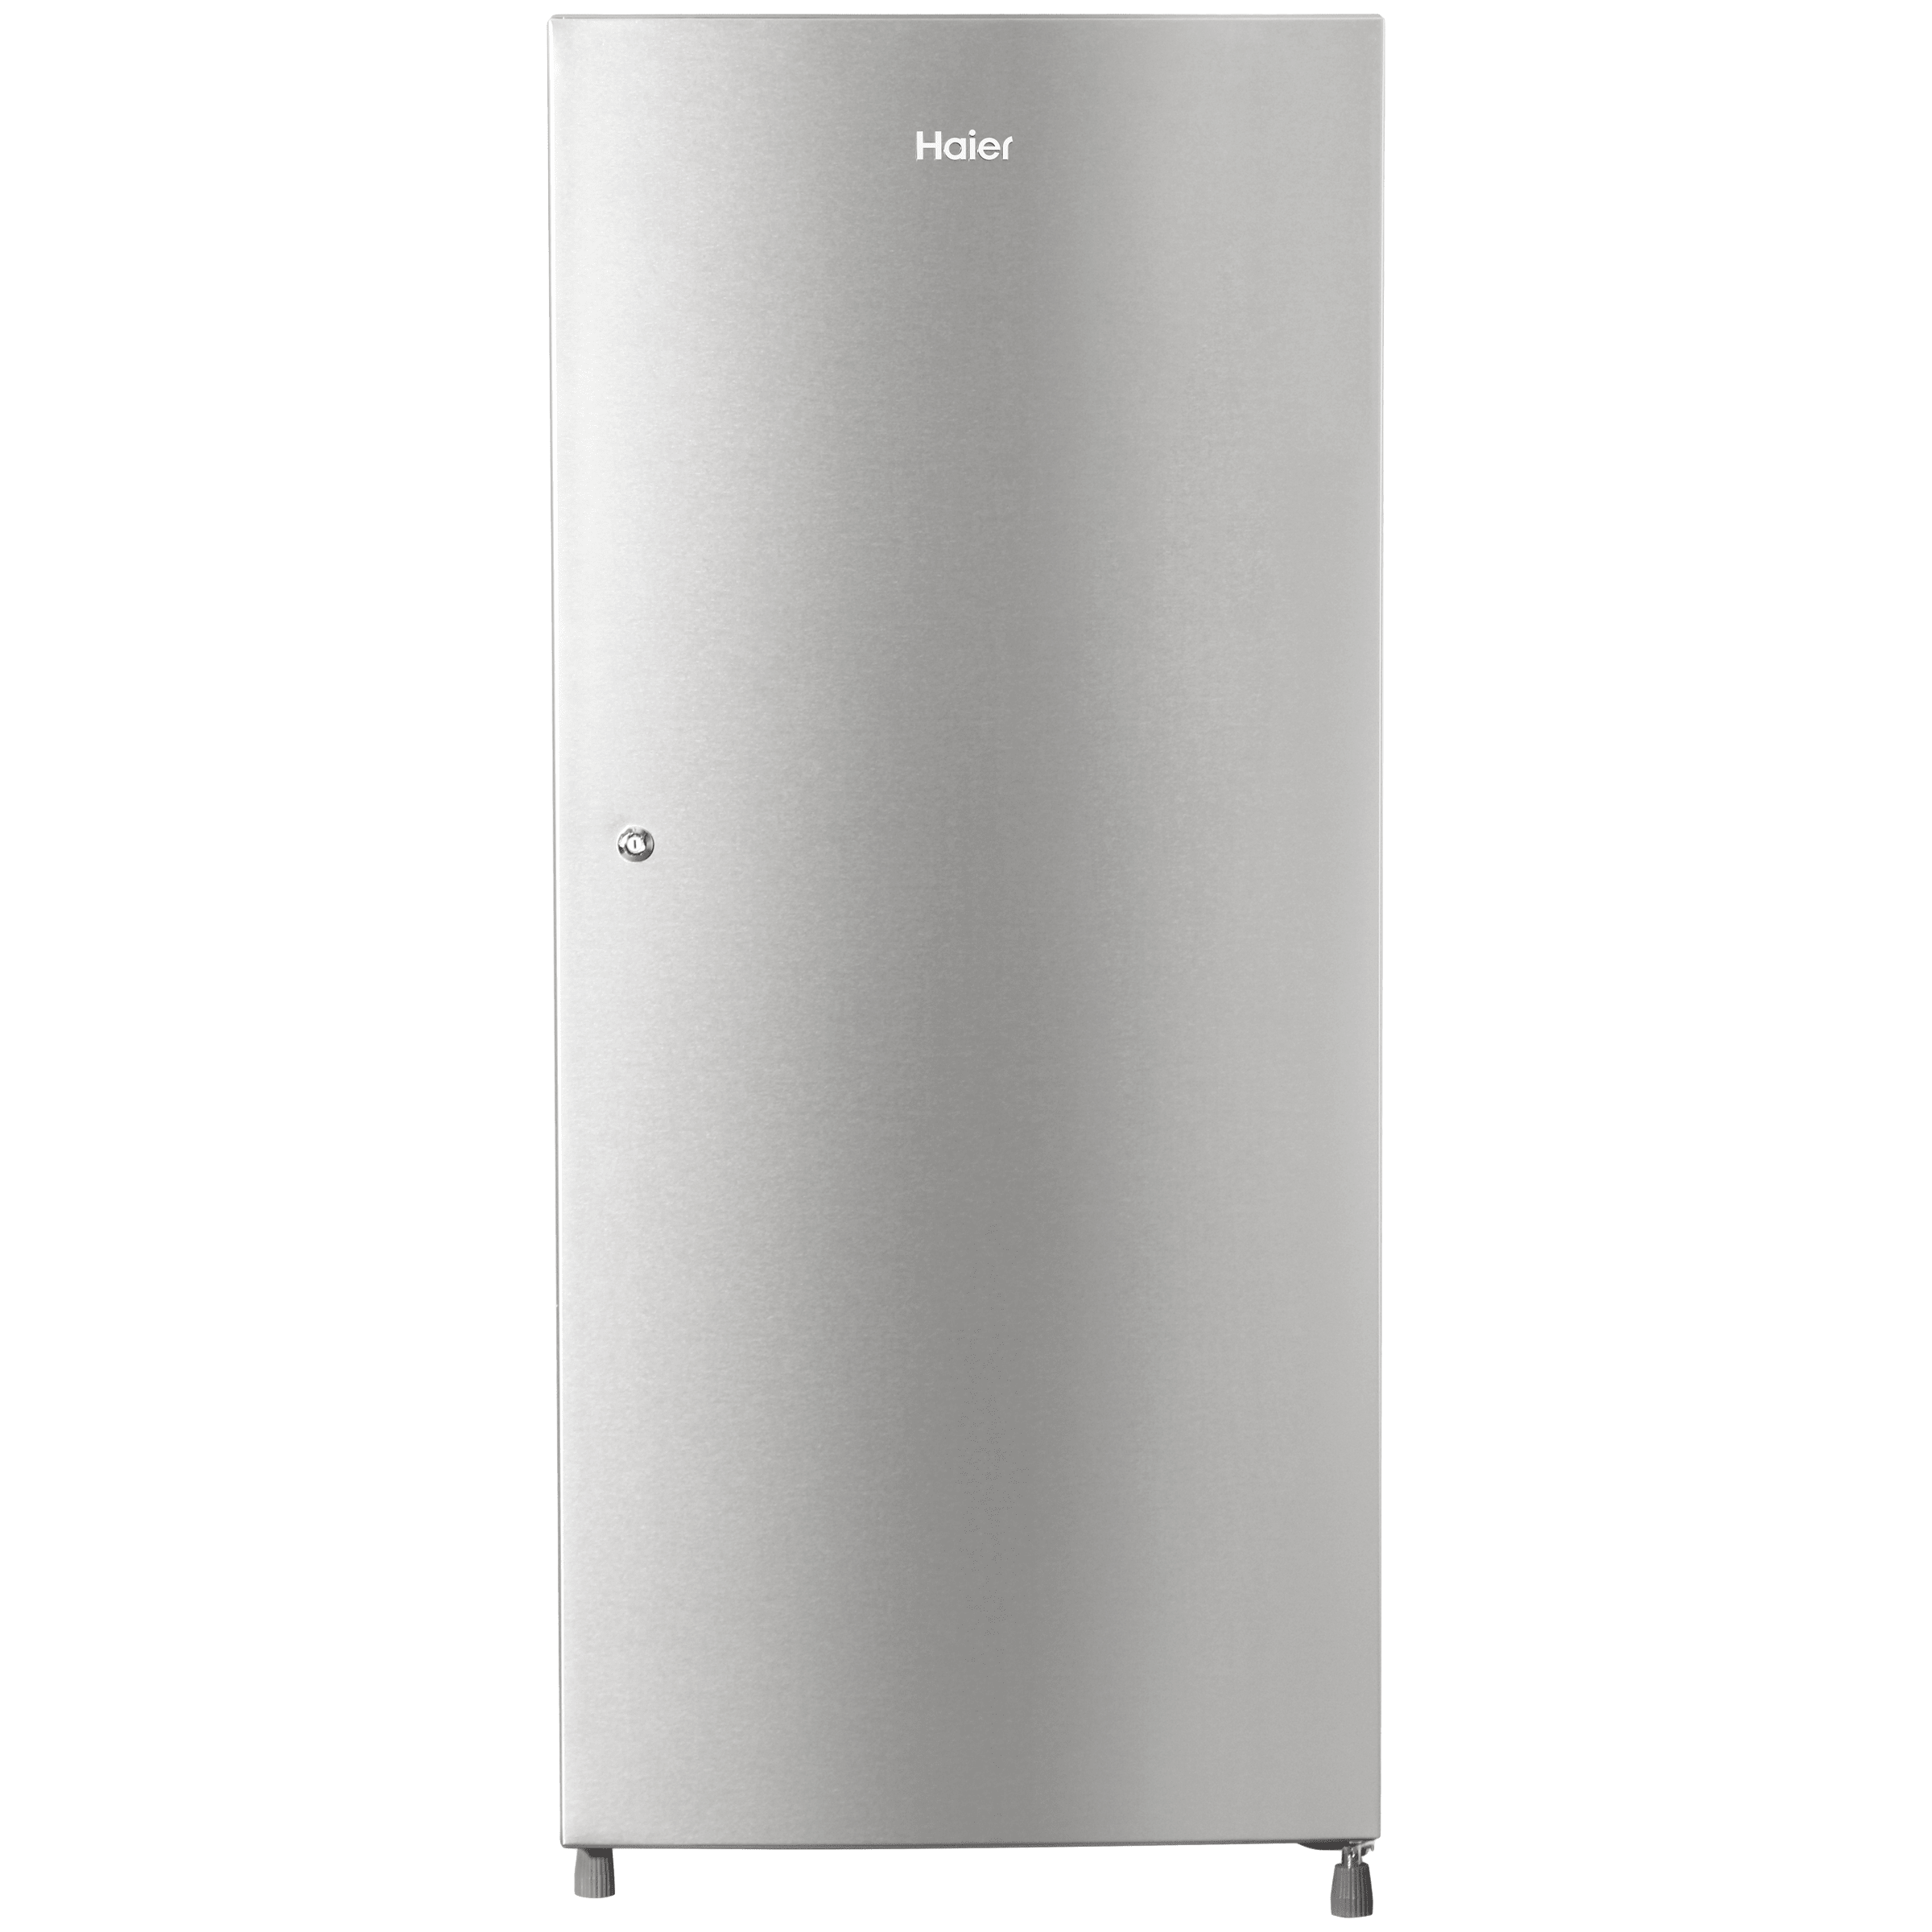 Haier 195 Litres 5 Star Direct Cool Inverter Single Door Refrigerator (1 Hour Icing Technology, HRD-1955CTS-E, Titanium Steel)